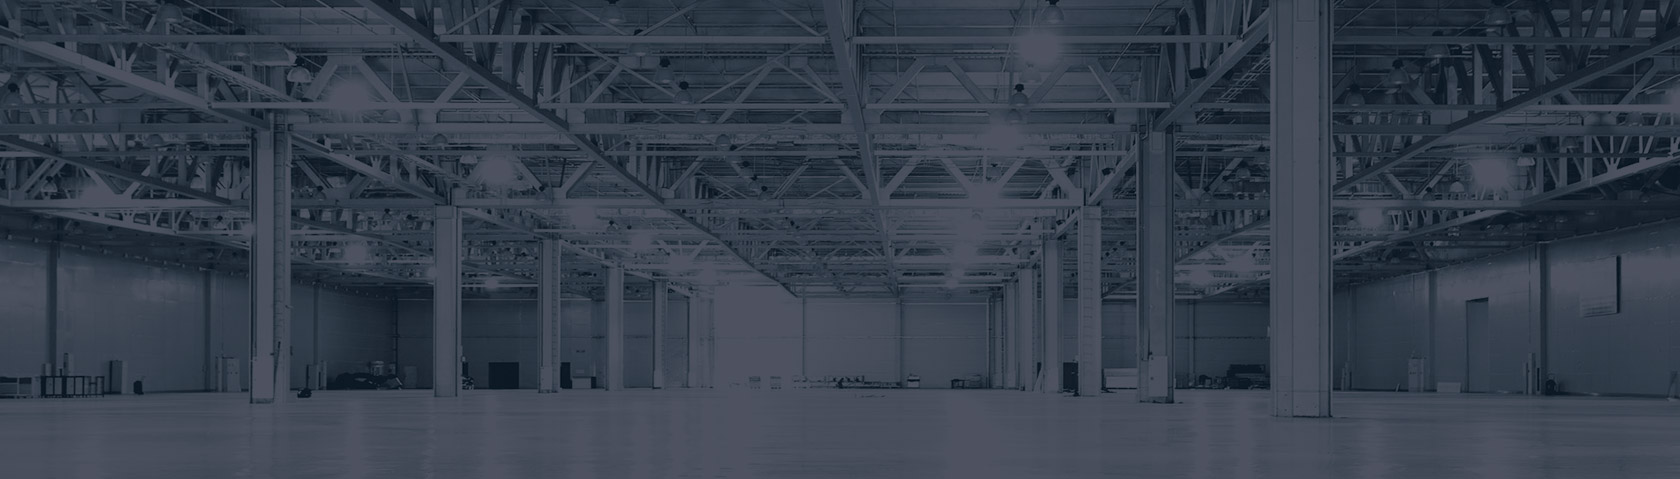 Commercial Property Maintenance : Commercial property maintenance nsb infrastructure